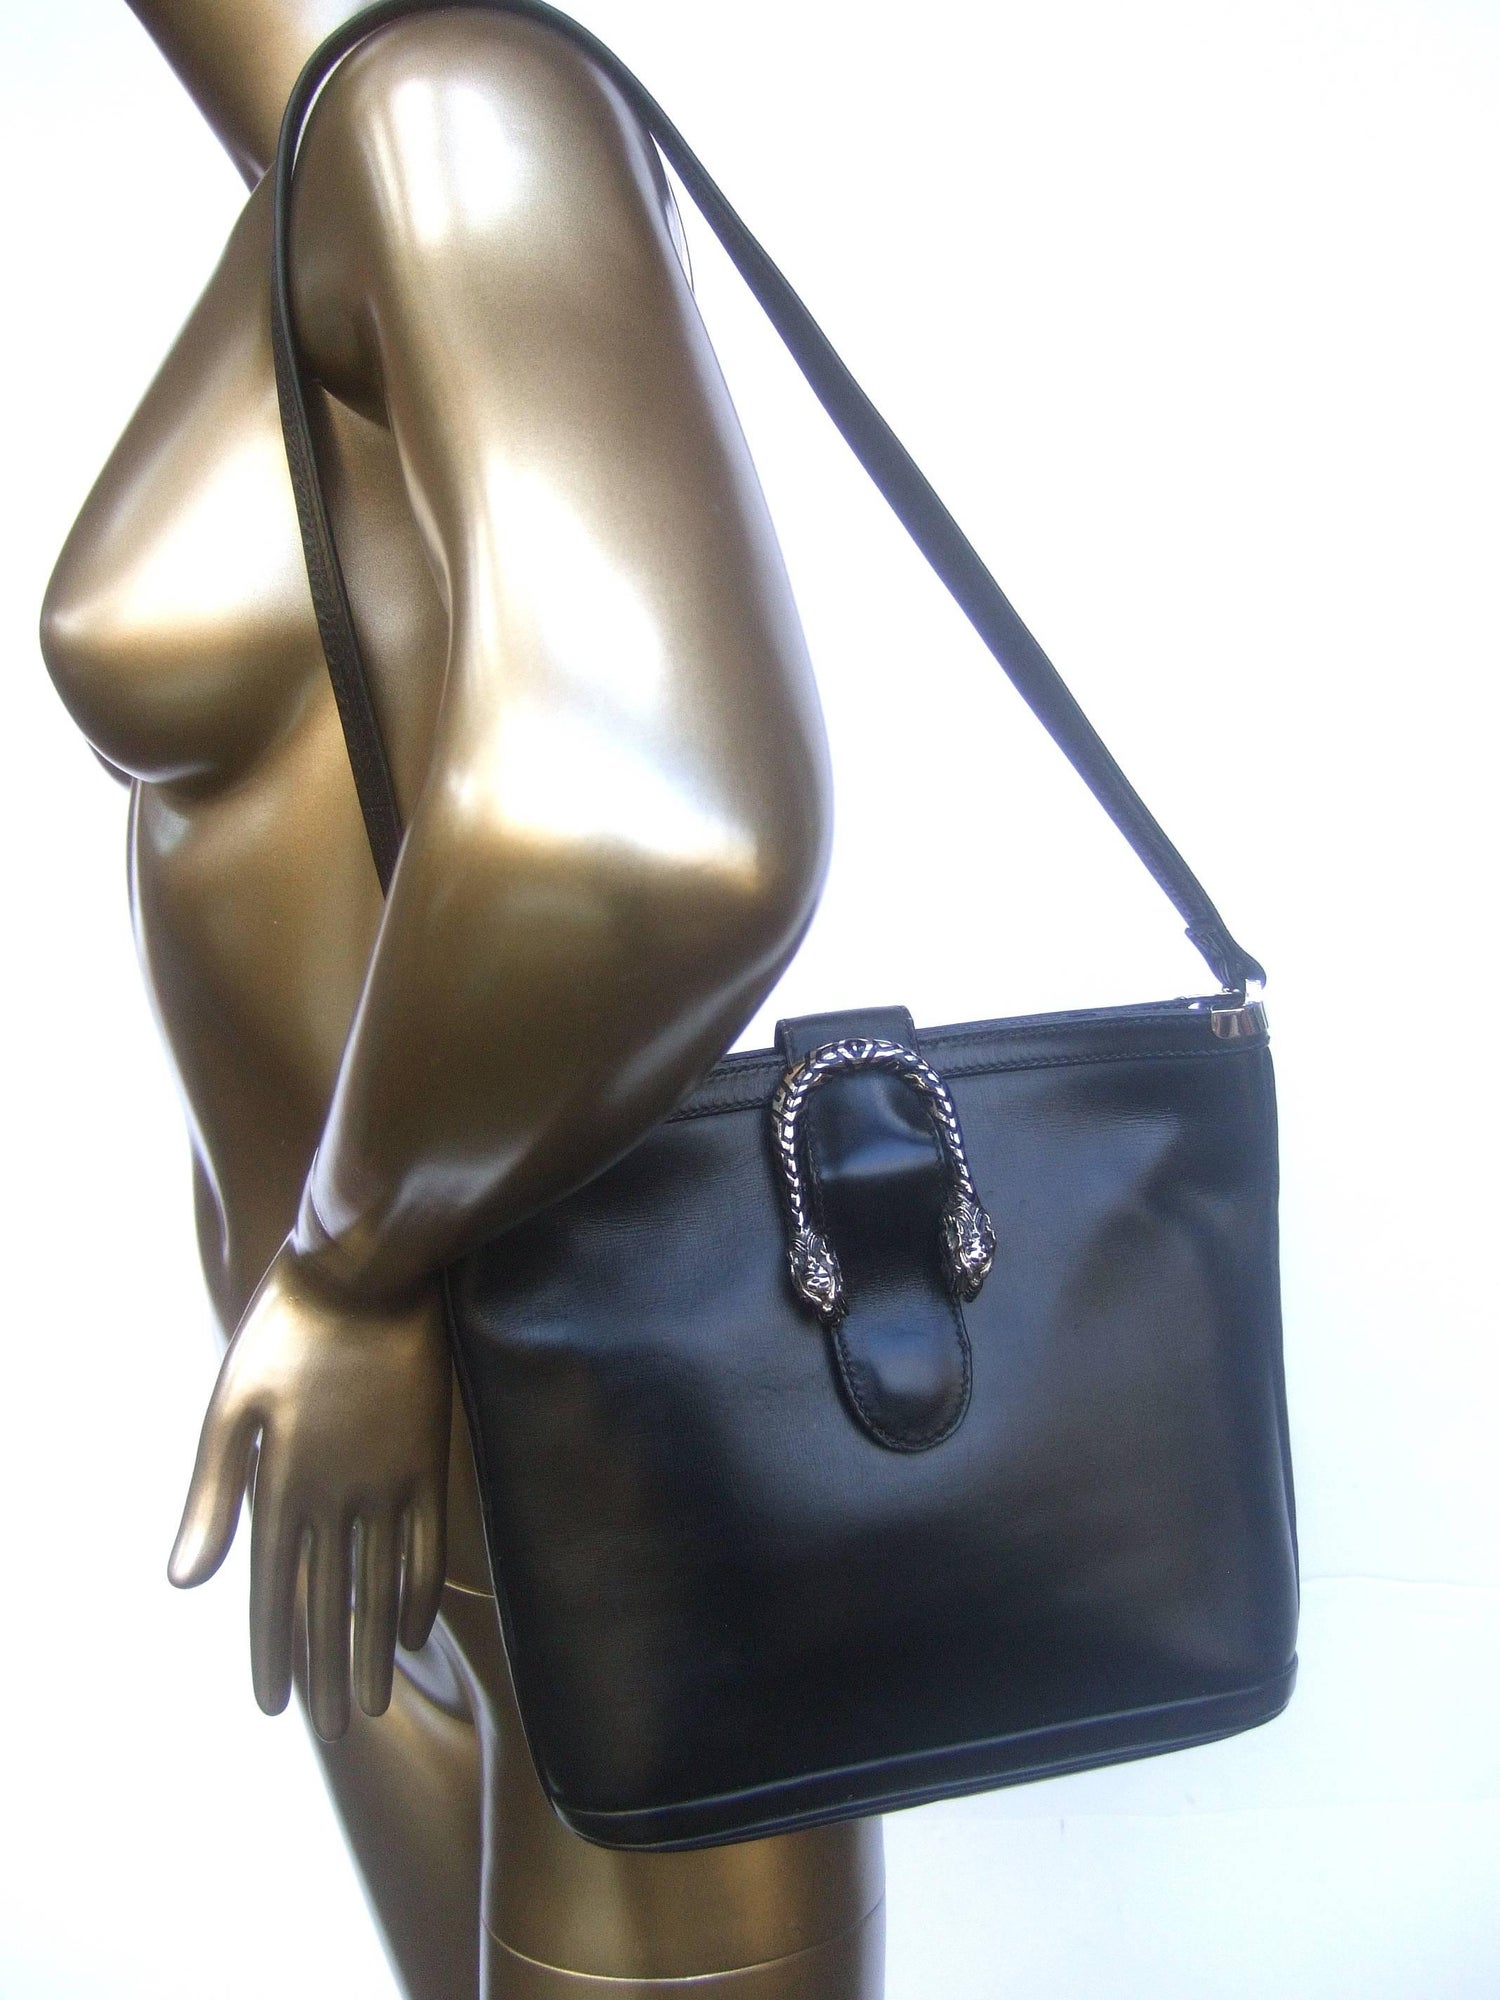 da3c91b89a9f Gucci Rare Sterling Silver Tiger Clasp Ebony Leather Handbag circa 1970s  For Sale at 1stdibs